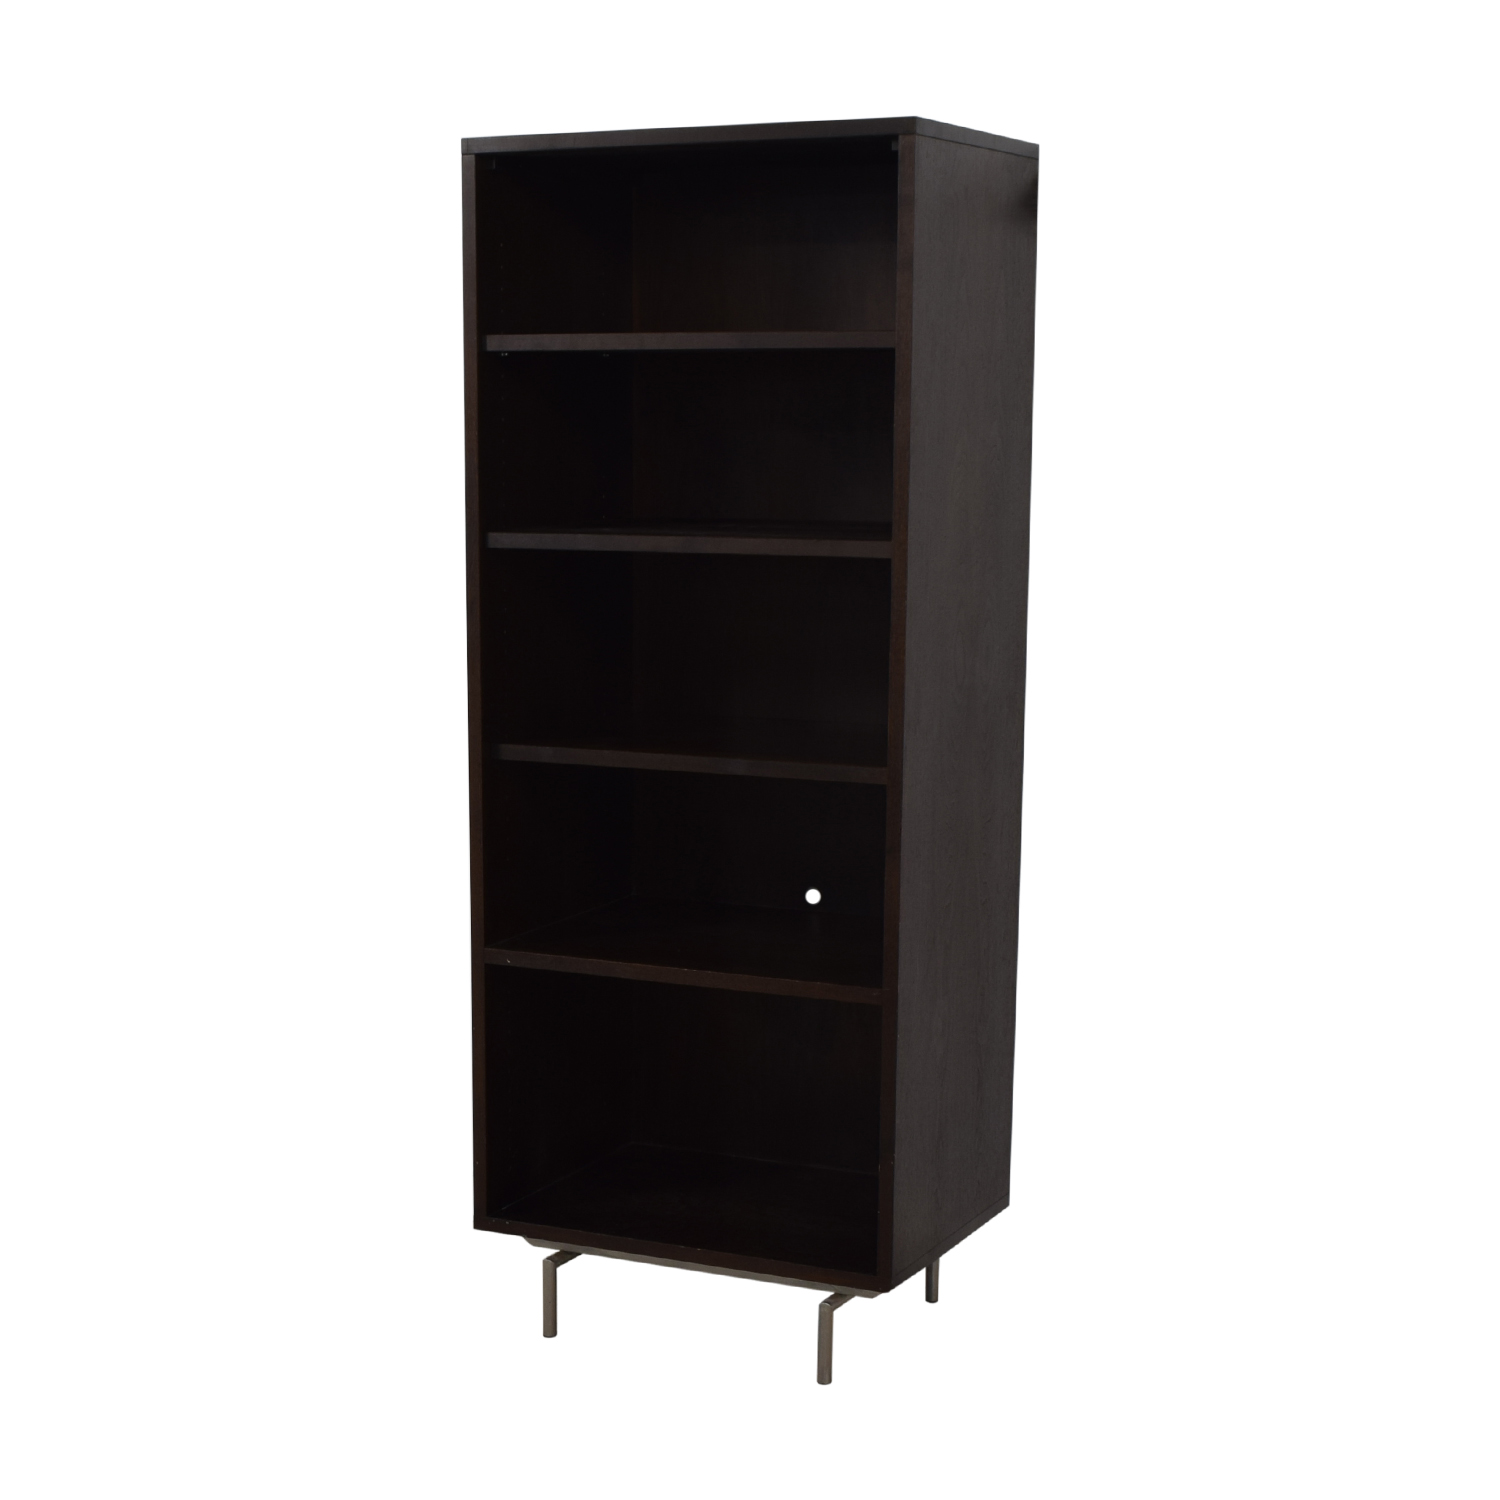 buy Room & Board Media Bookshelf Room & Board Bookcases & Shelving